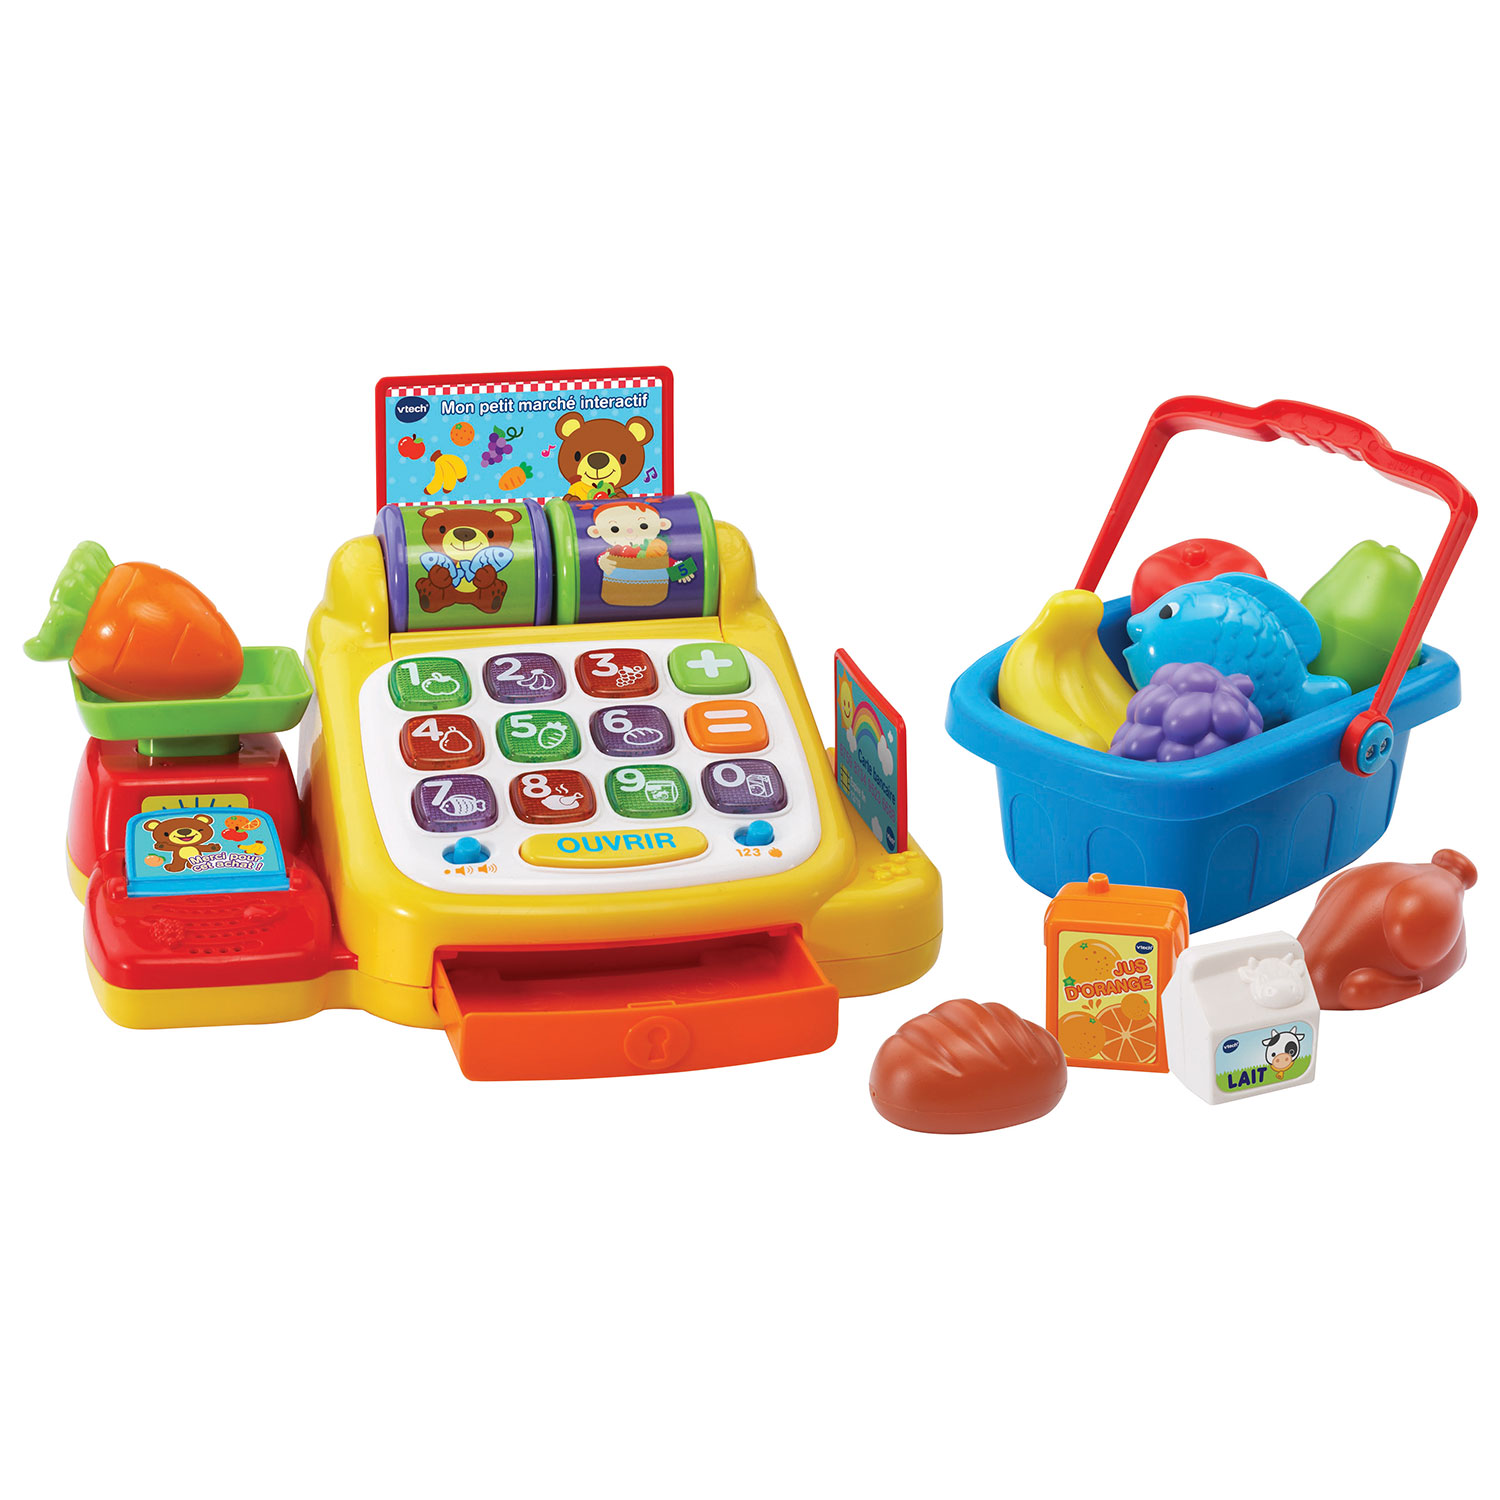 Caisse enregistreuse Ring & Learn de VTech